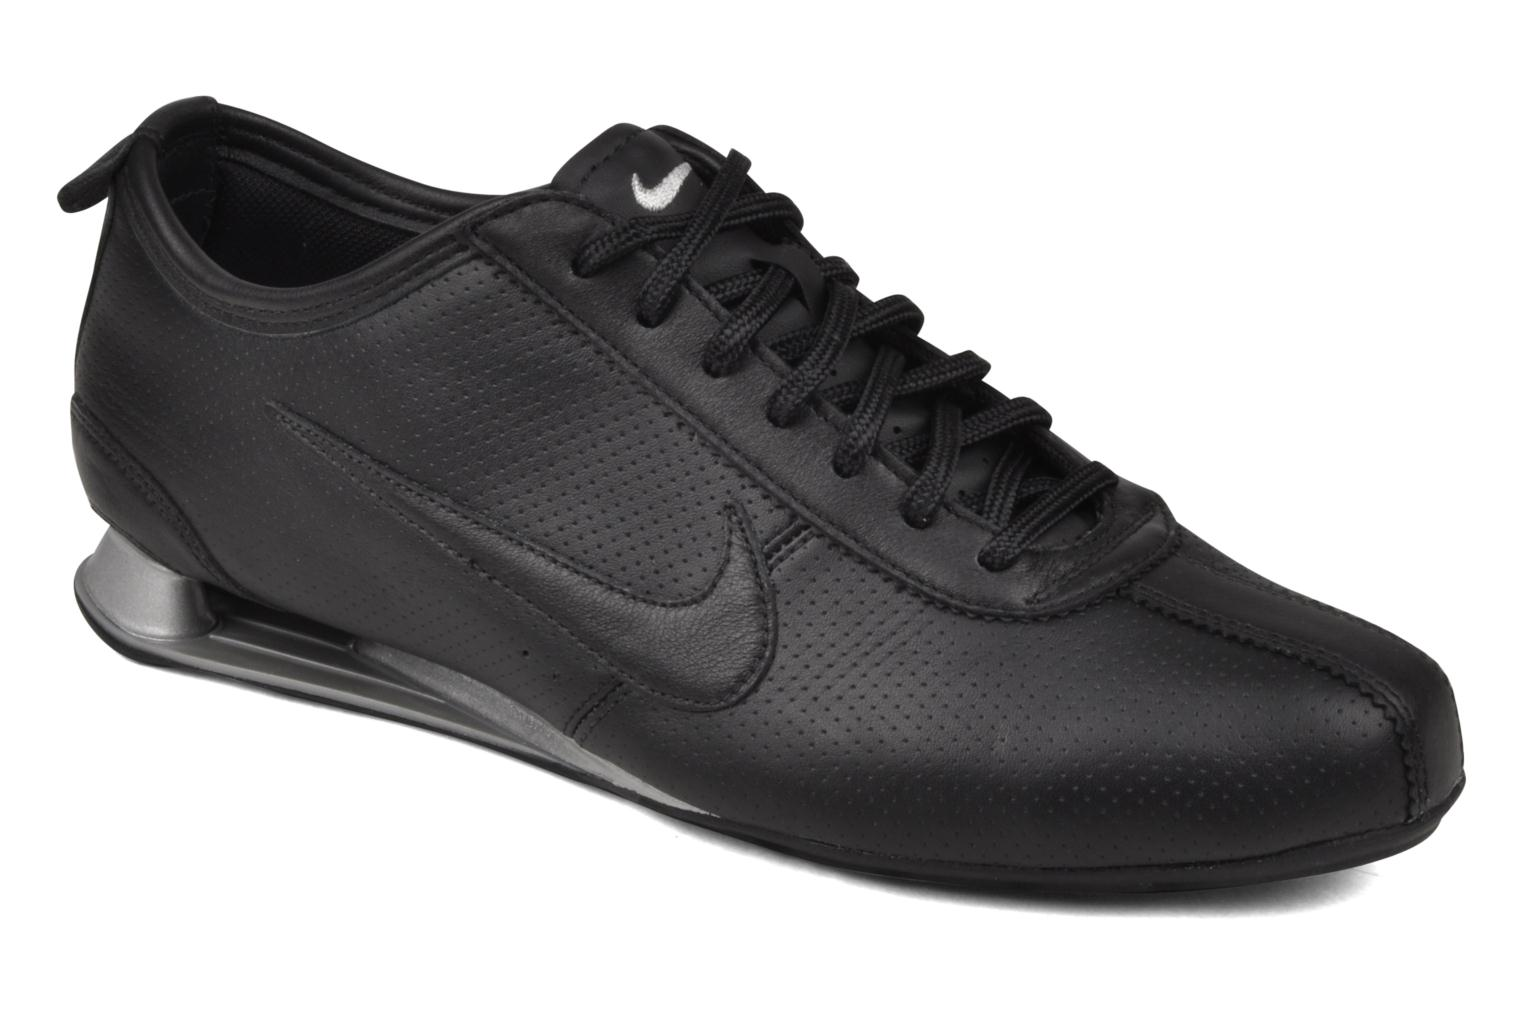 reputable site 2ee47 c48cd Nike Nike Shox Rivalry (Noir) - Baskets chez Sarenza (39472)